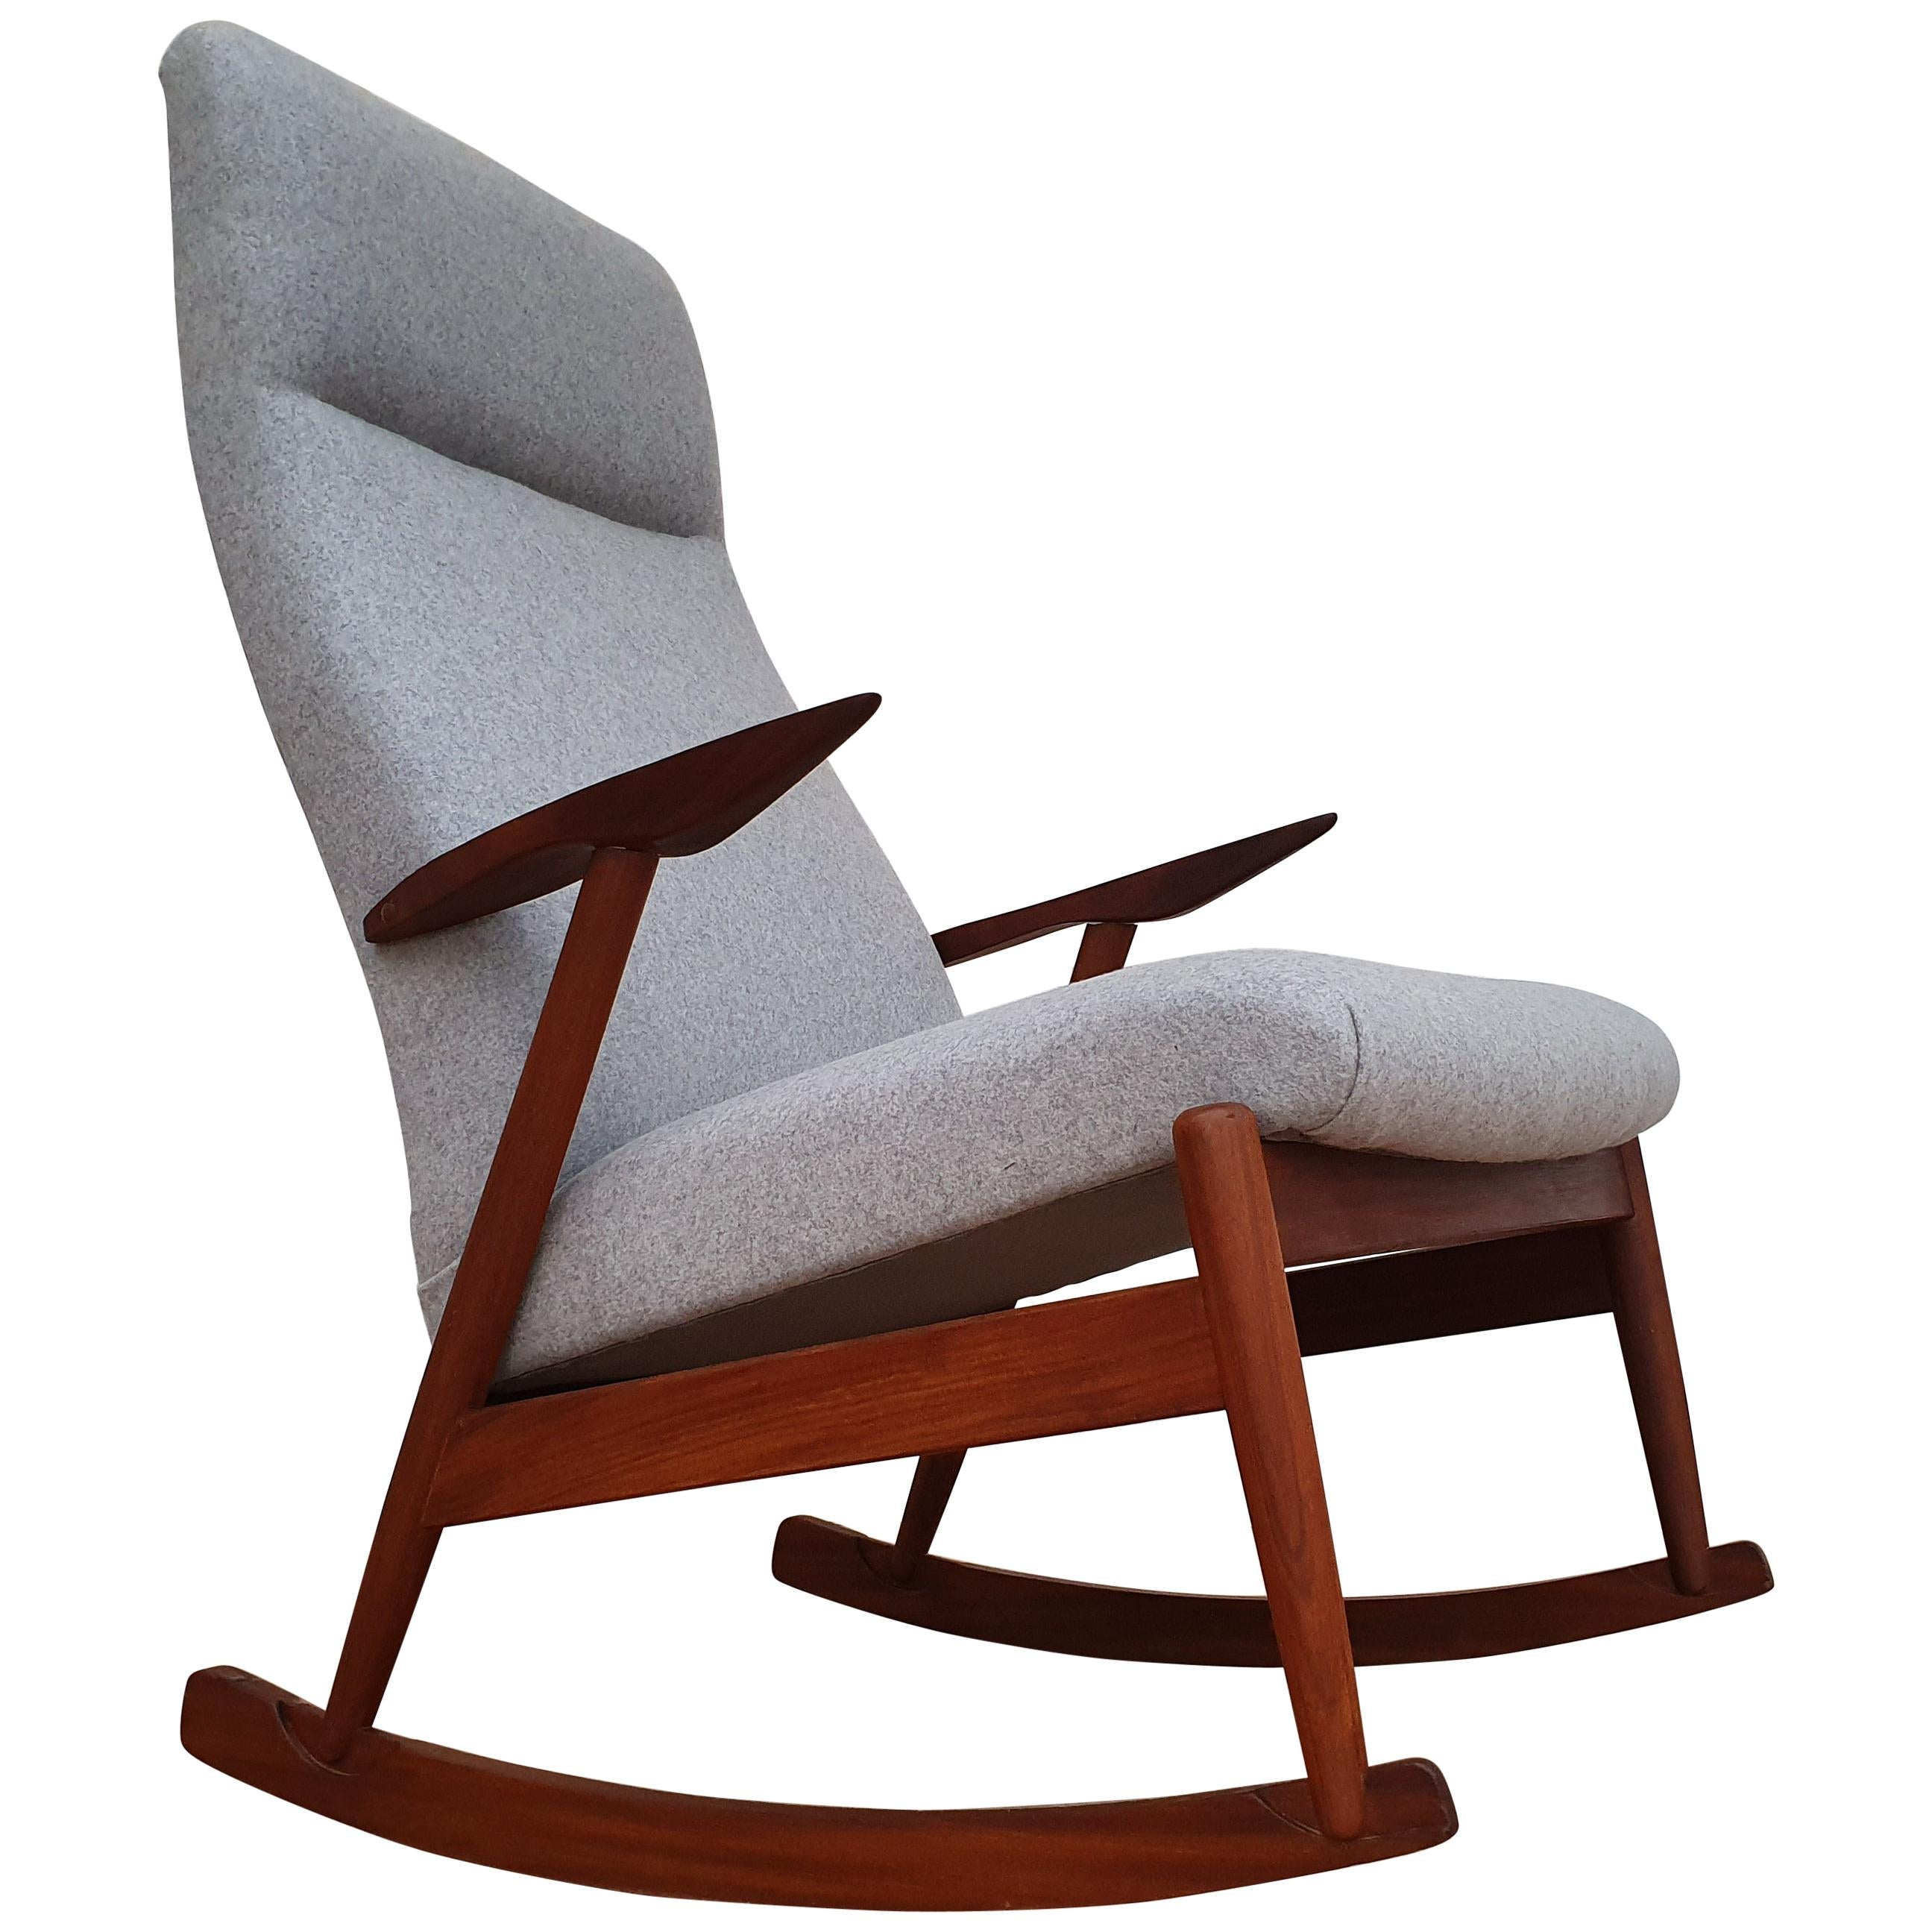 Enjoyable Danish Rocking Chairs 117 For Sale At 1Stdibs Pdpeps Interior Chair Design Pdpepsorg